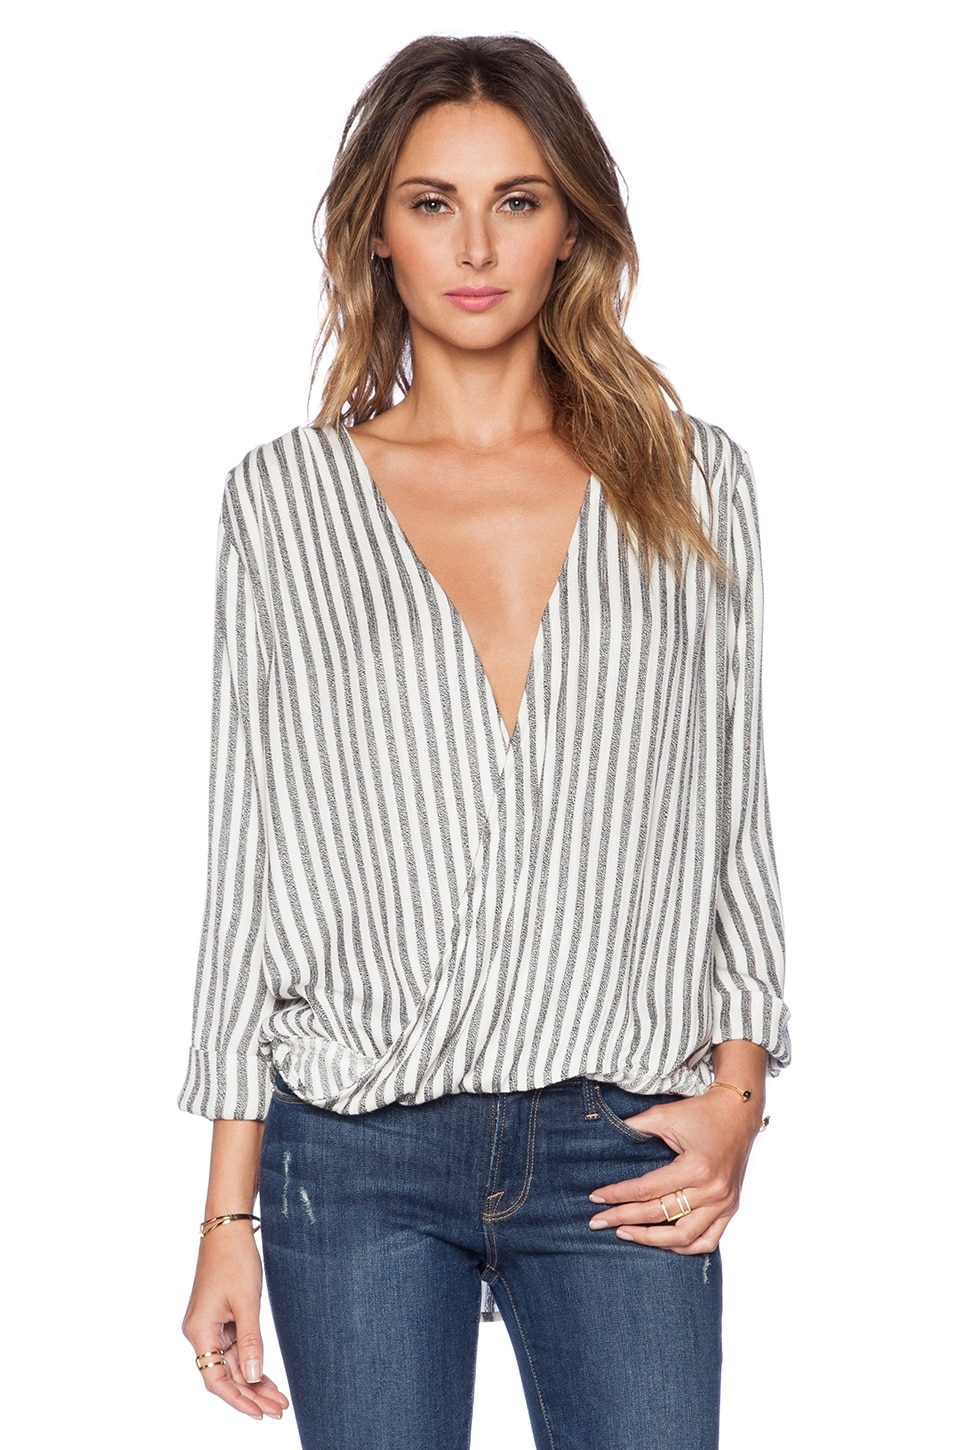 LIV Claude Cross V Top in Stripe